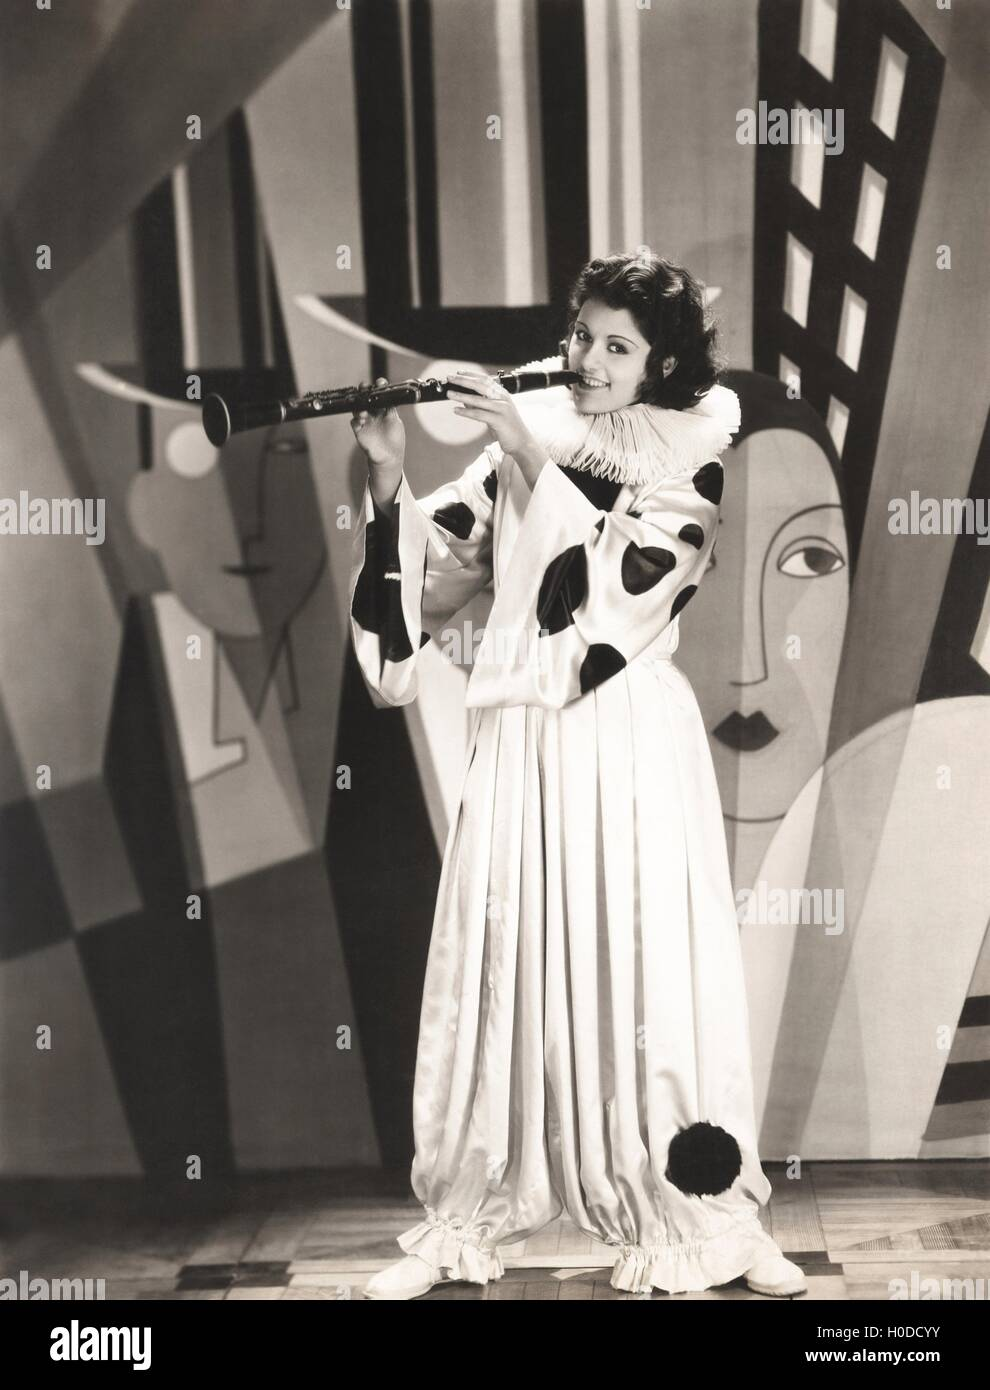 Woman in clown costume playing clarinet - Stock Image